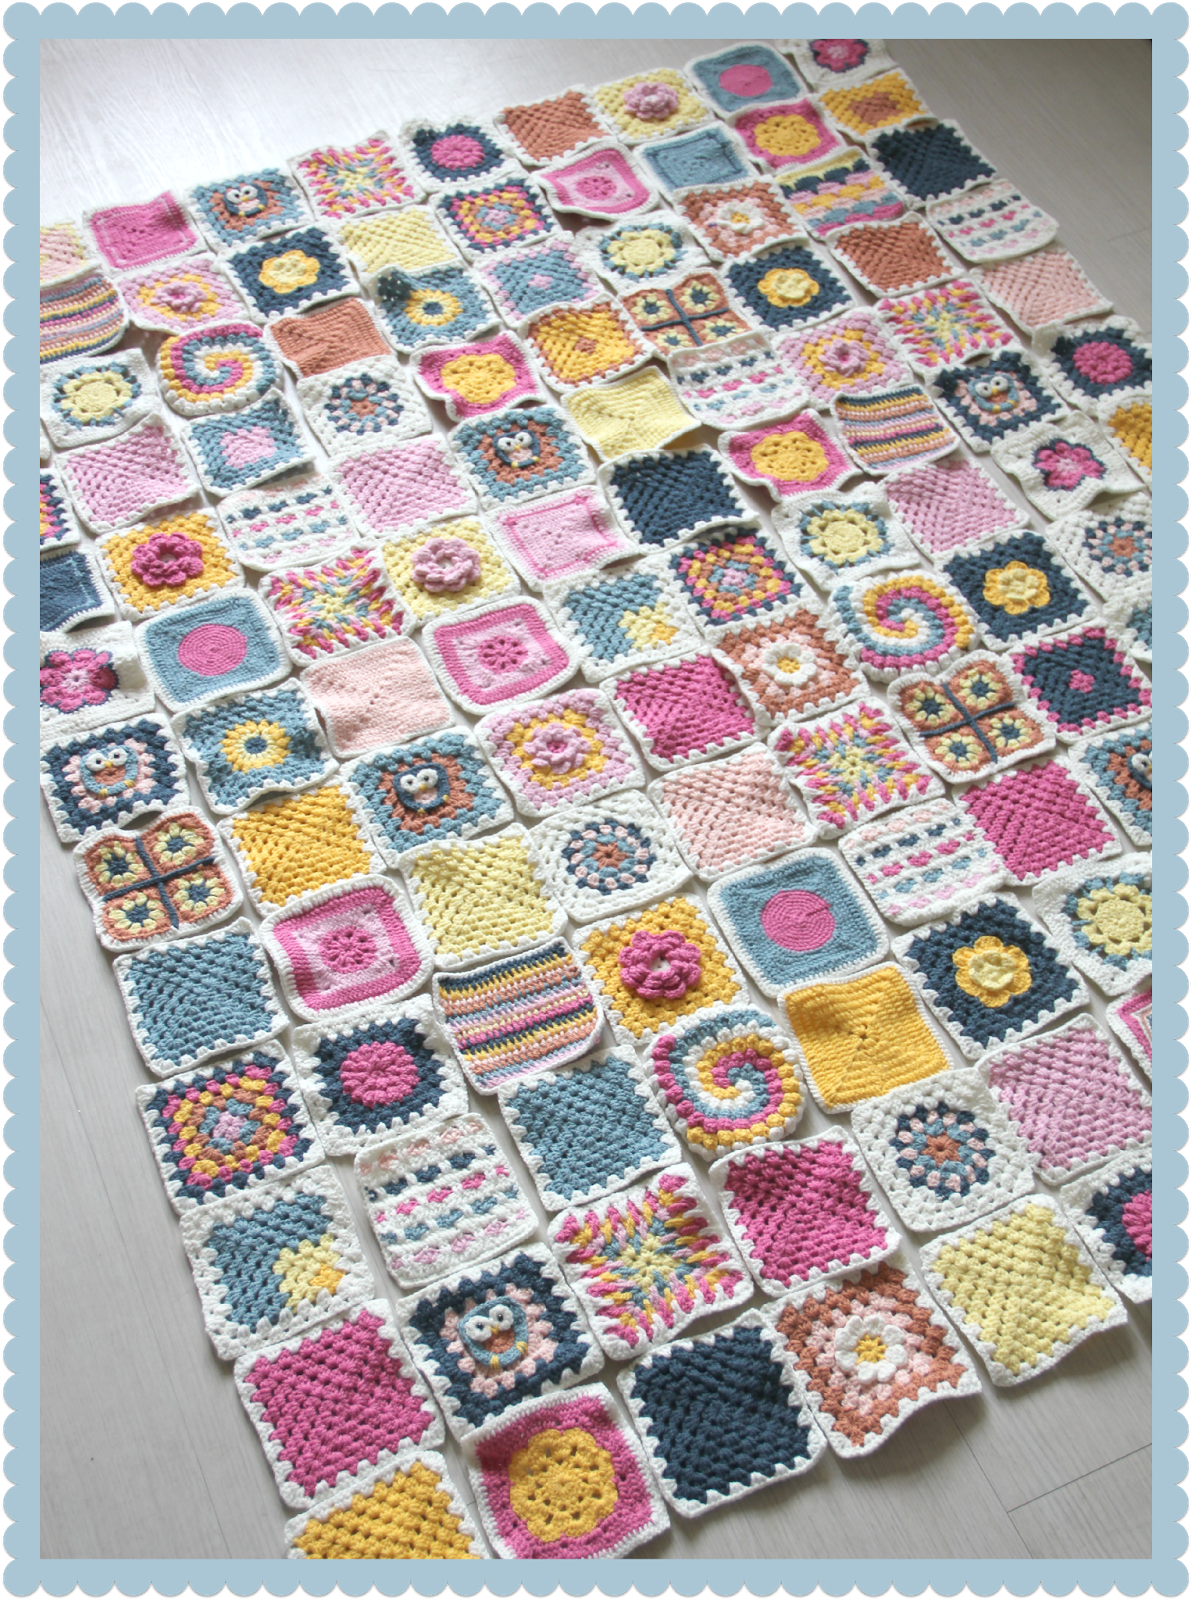 A Couple Of Weeks Ago I Started Assembling My Granny Square Blanket